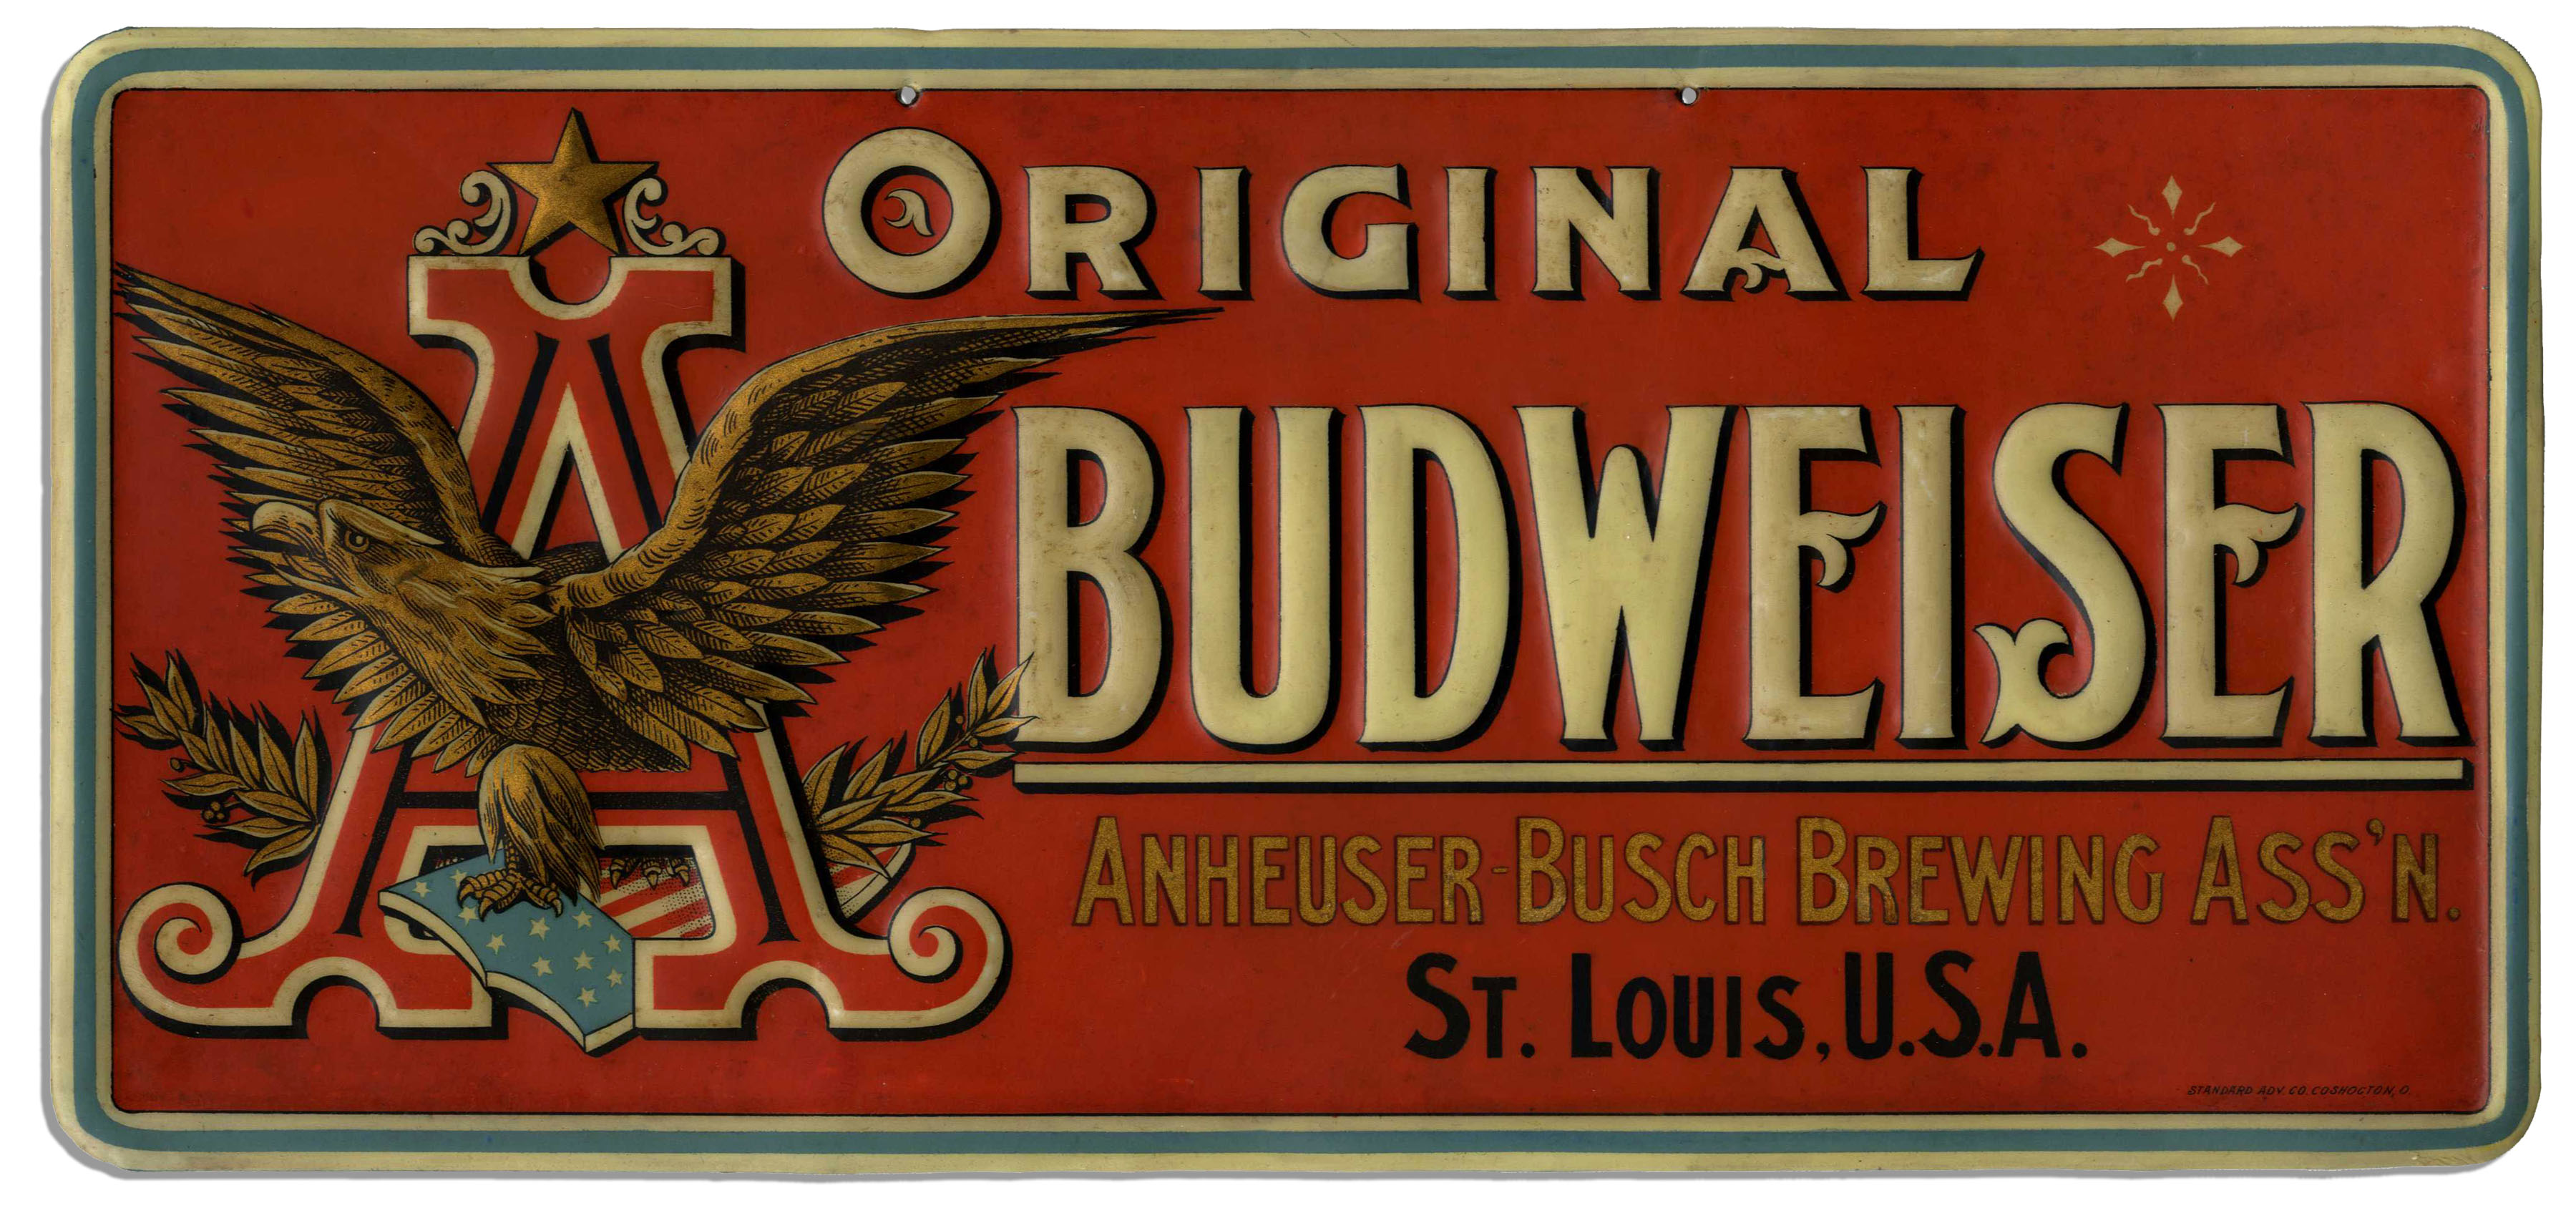 an overview of the history of anheuser busch